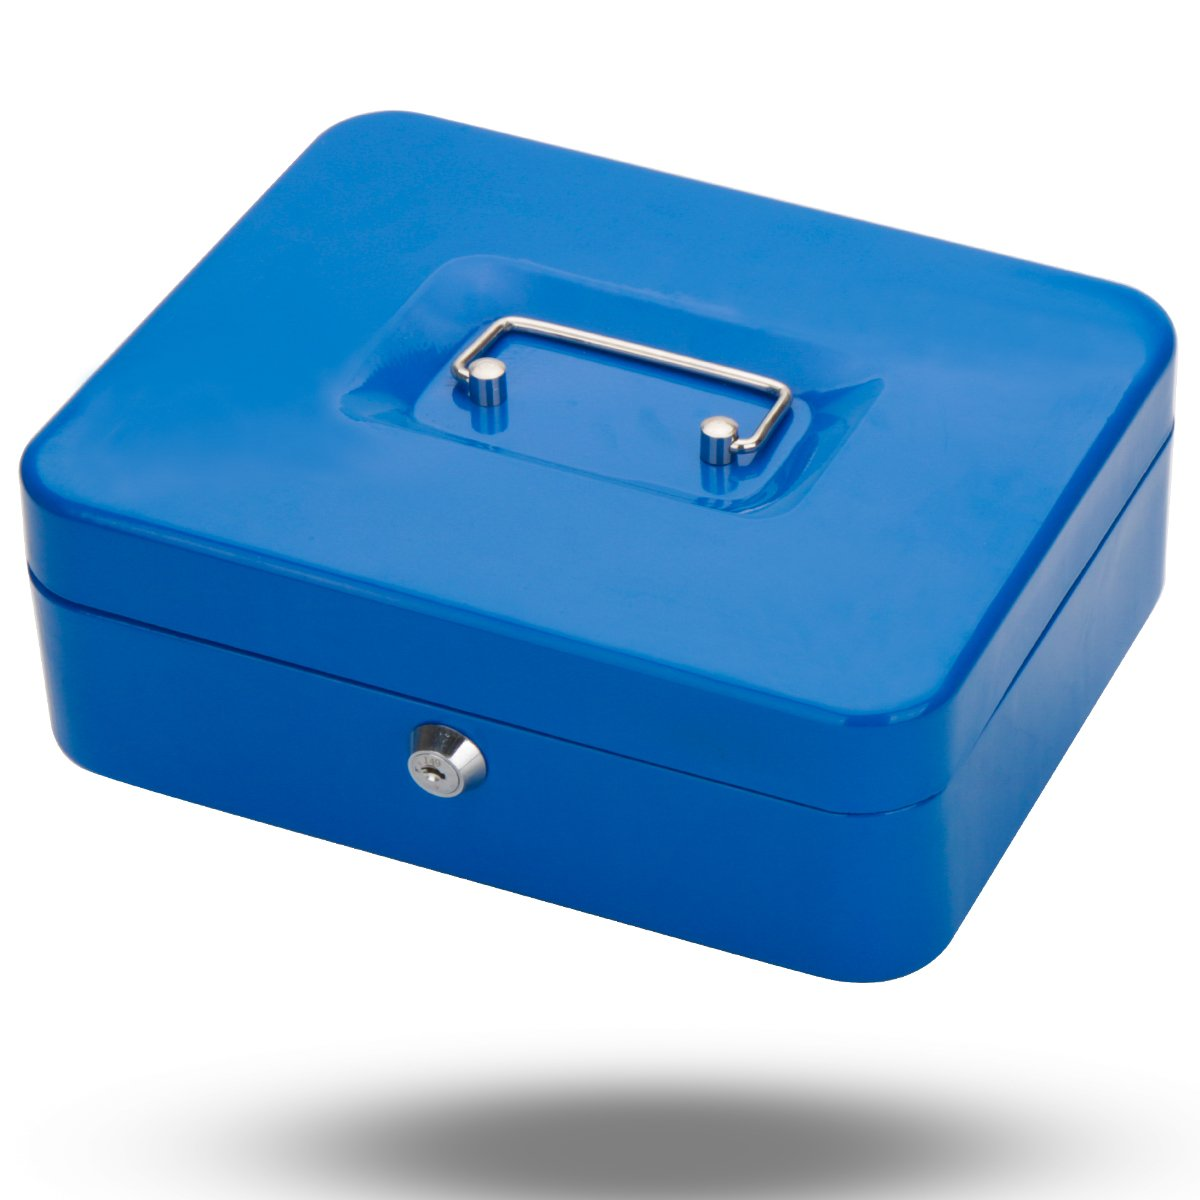 Metal Cash Box with Money Tray, Decaller Money Box with Key Lock for Security (Blue, Medium - 9 4/5'' x 7 4/5'' x 3 1/2''), QH2505M